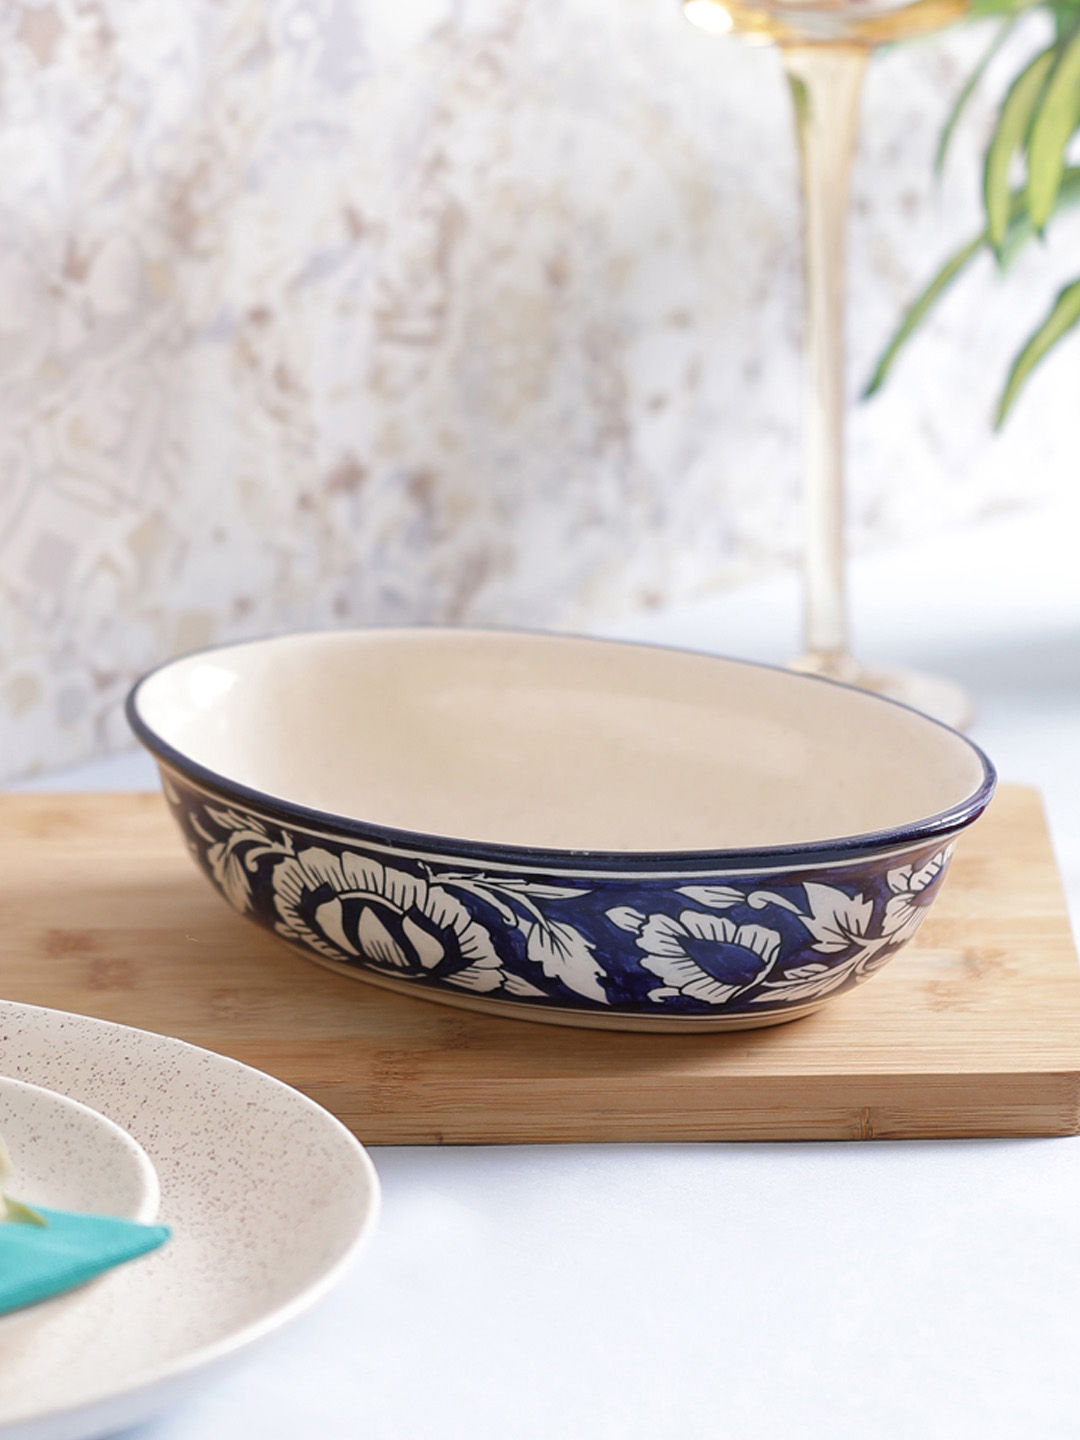 Blue Moroccan Oval Stoneware Serving Bowl Vsekw063